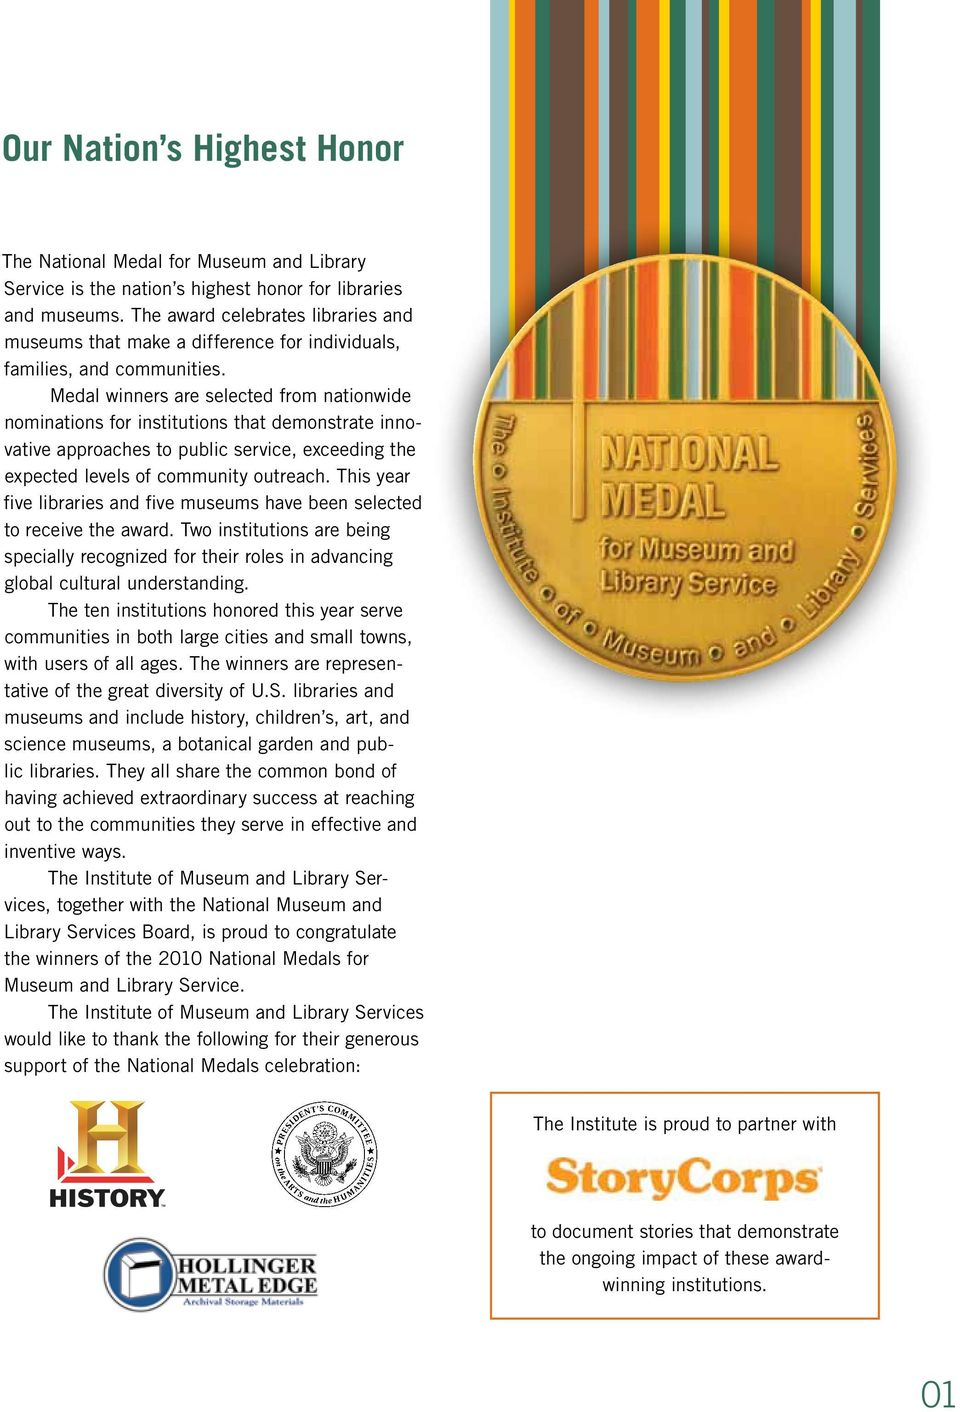 Medal winners are selected from nationwide nominations for institutions that demonstrate innovative approaches to public service, exceeding the expected levels of community outreach.